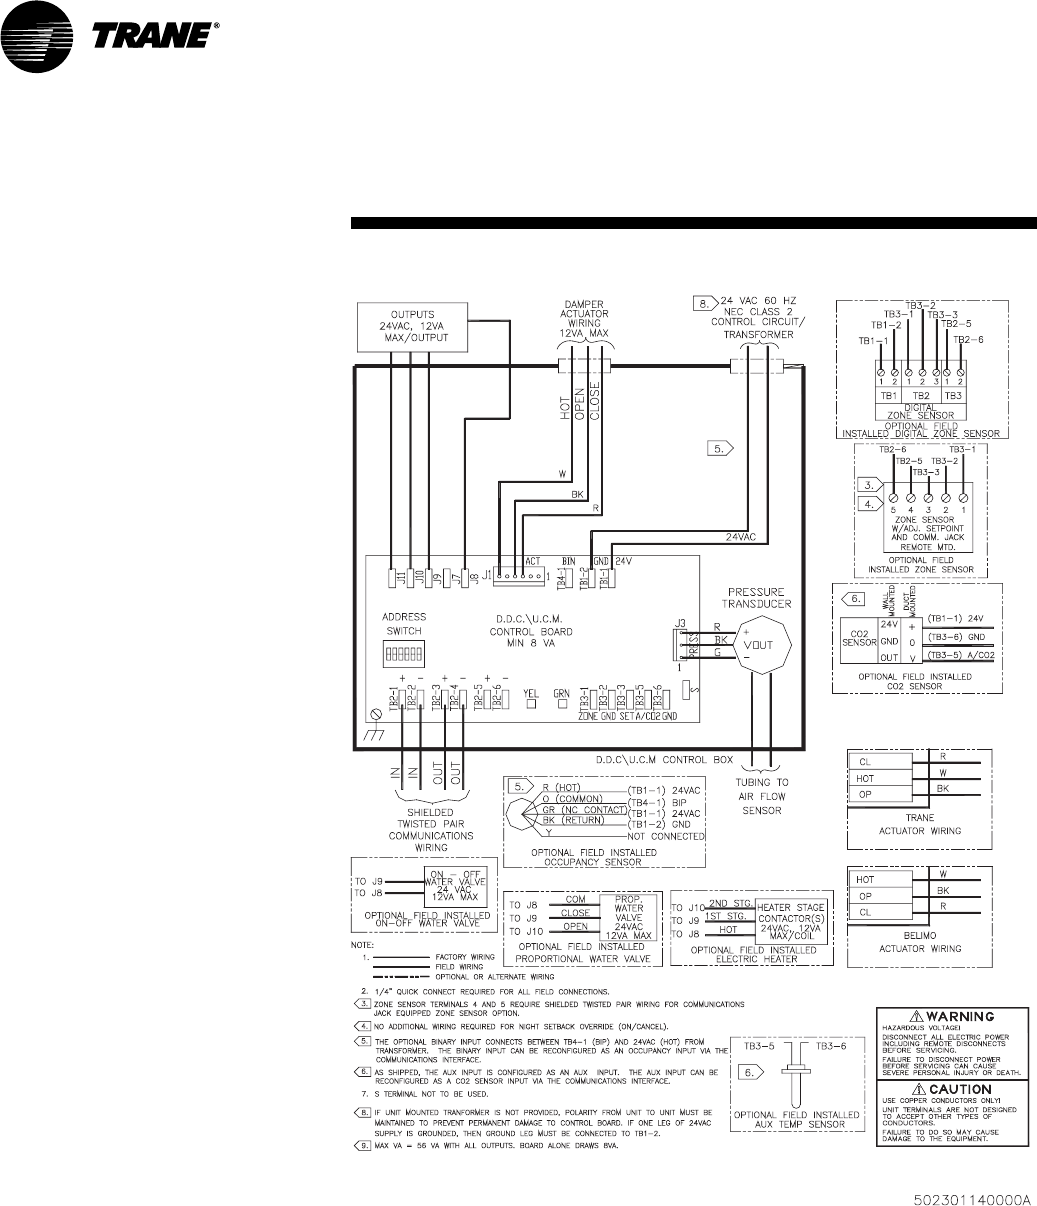 d4caf1d7 0cc1 45f7 9cd7 ab973dff8ed8 bg6 page 6 of trane air conditioner unit control module (ucm) 4 2 vav wiring diagram at bakdesigns.co